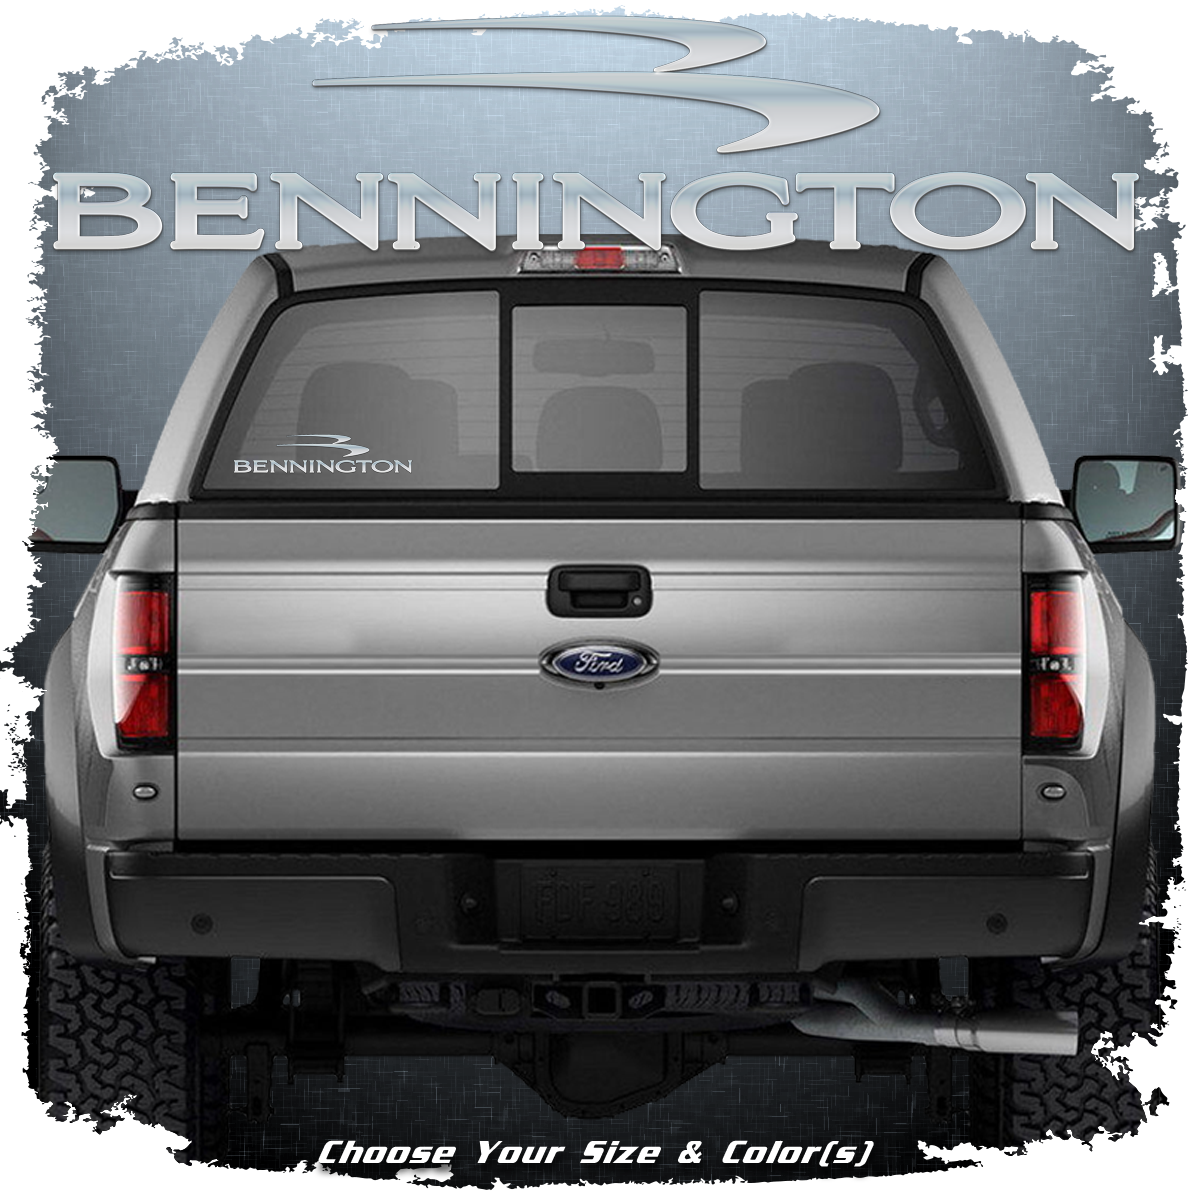 Domed Bennington Window decal, Choose Your Size & Color